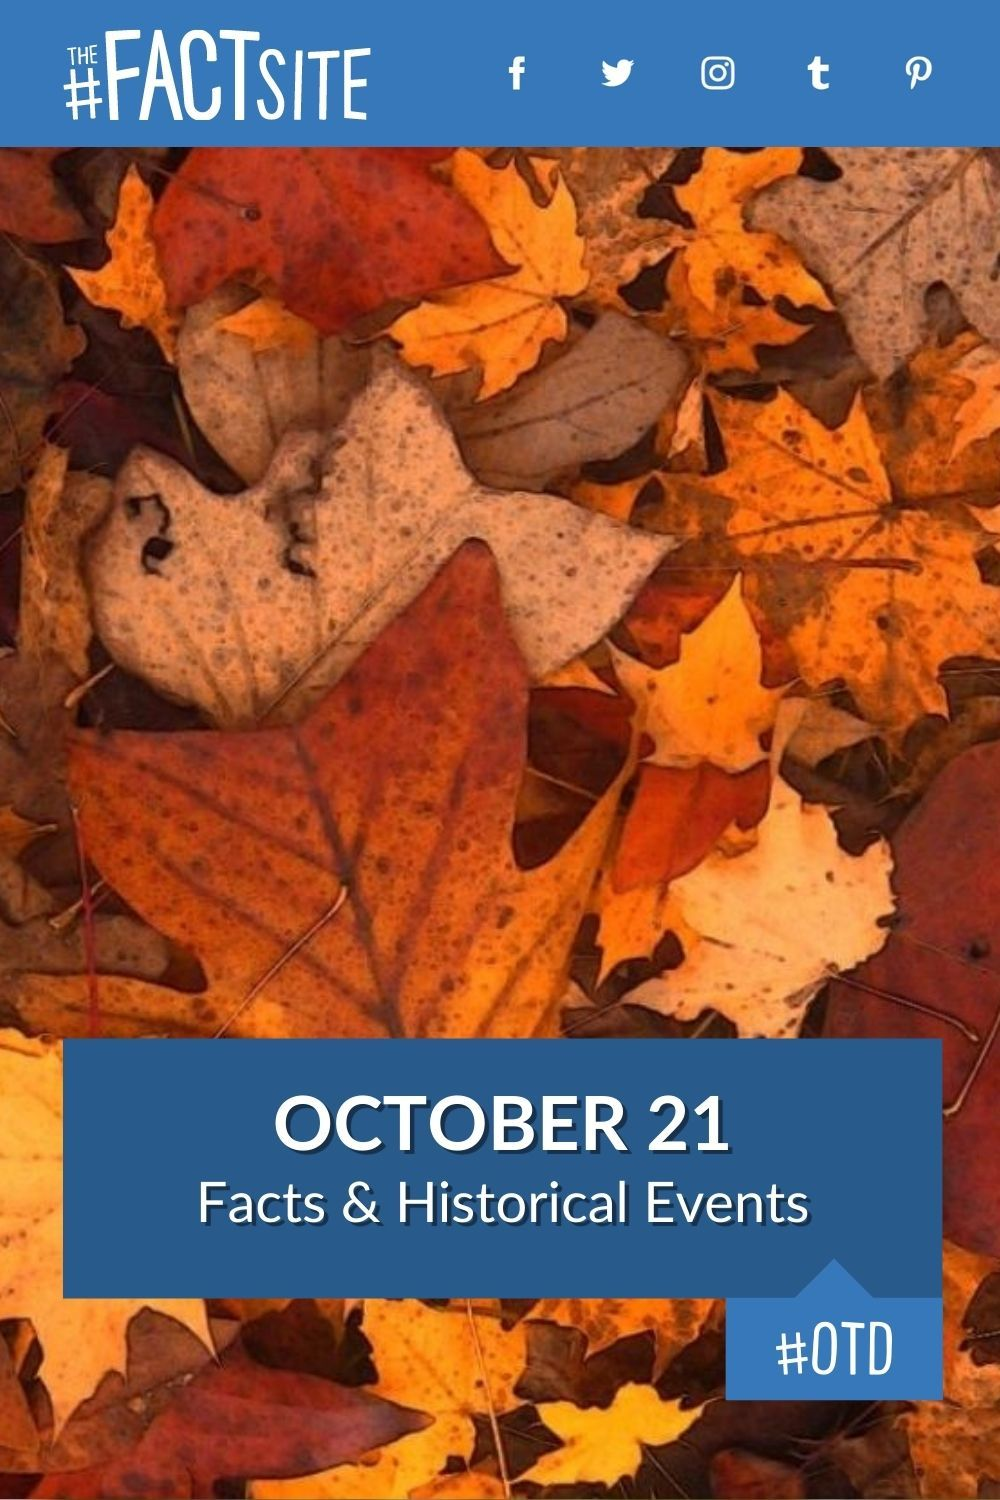 Facts & Historic Events That Happened on October 21